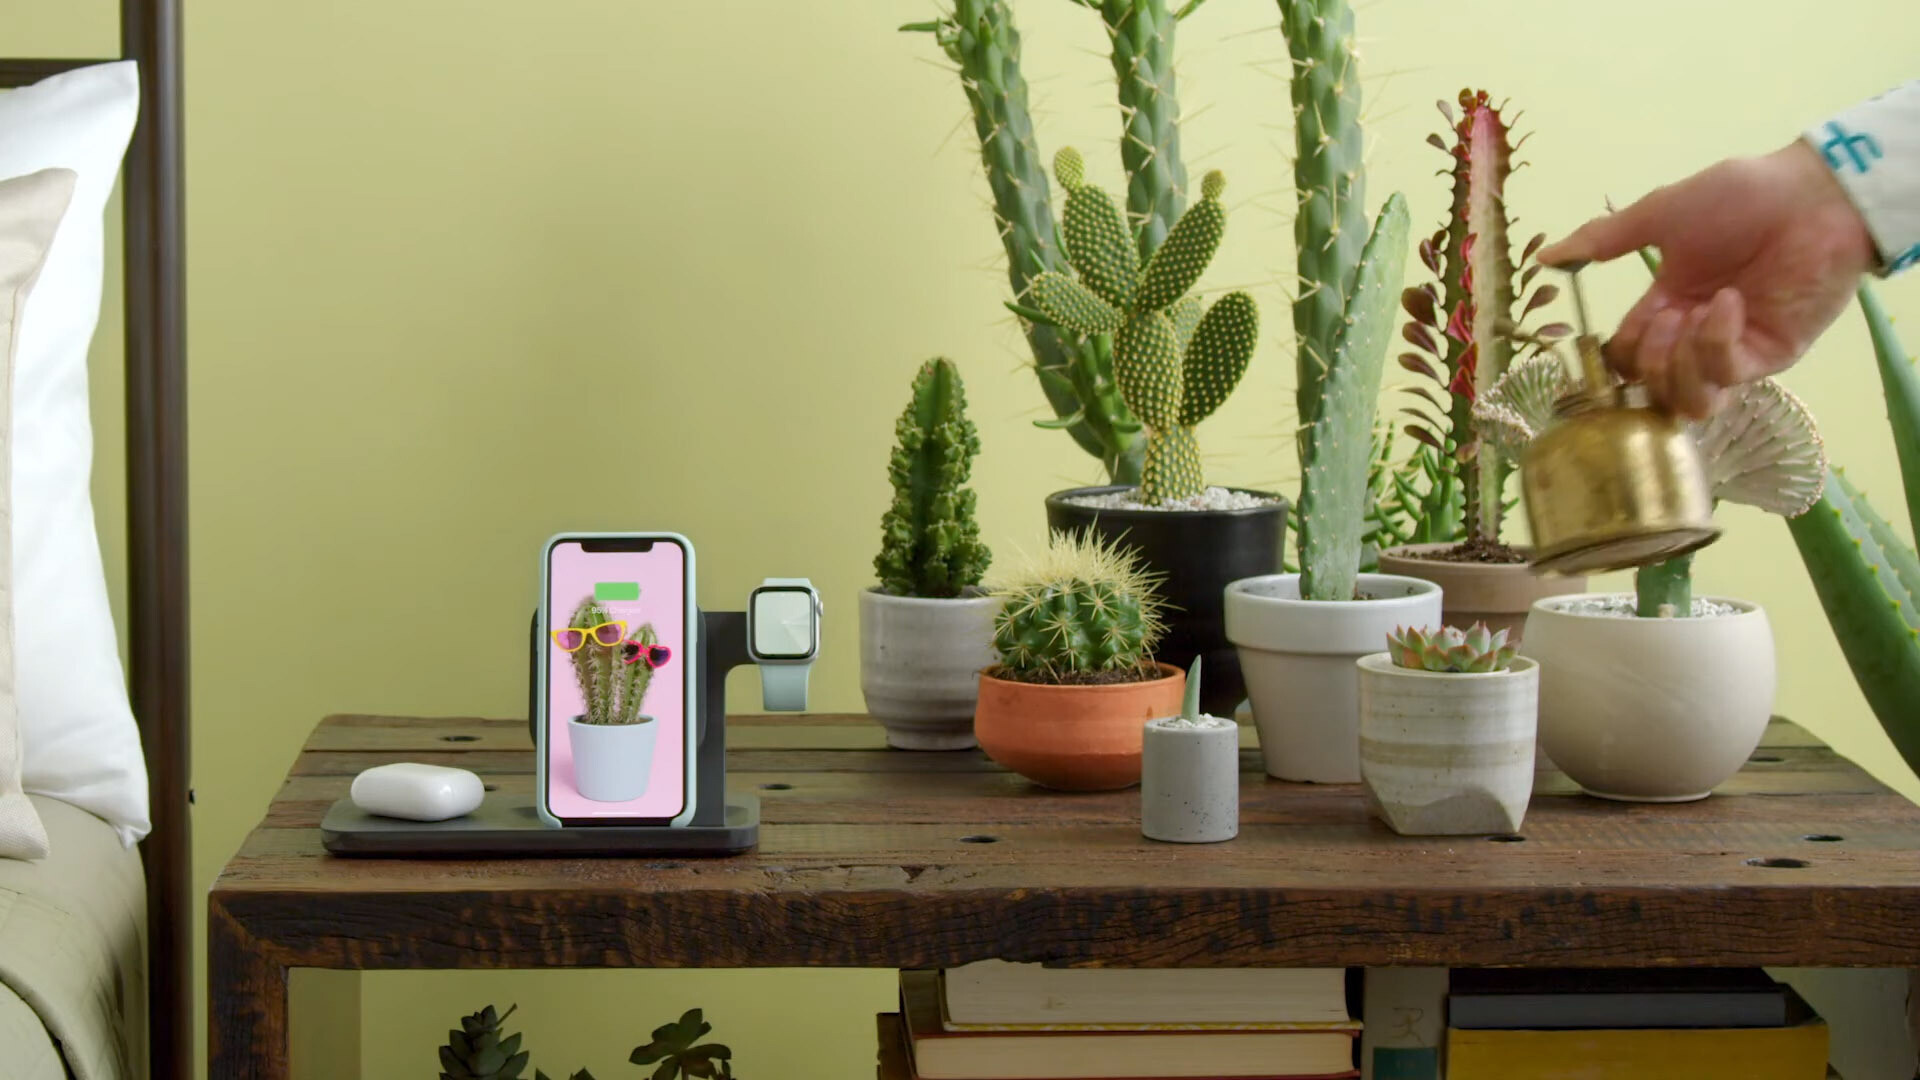 Logitech POWERED Wireless Charging 3-in-1 Dock - Logitech's Powered wireless charger tops up iPhone, AirPods and Watch, at AirPower price